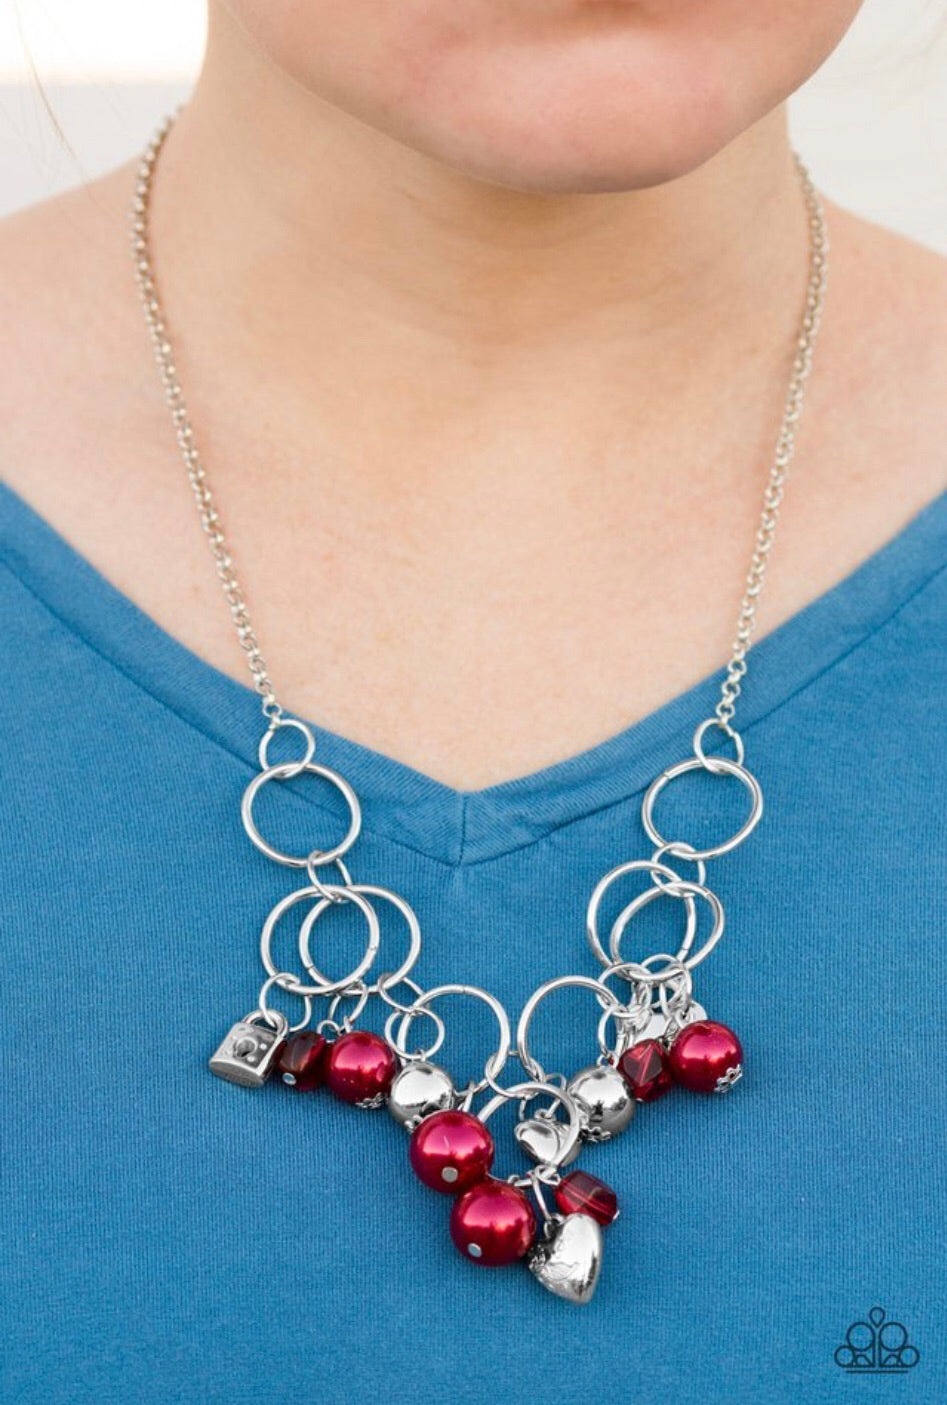 Paparazzi Jewelry Necklace In A Bind - Red